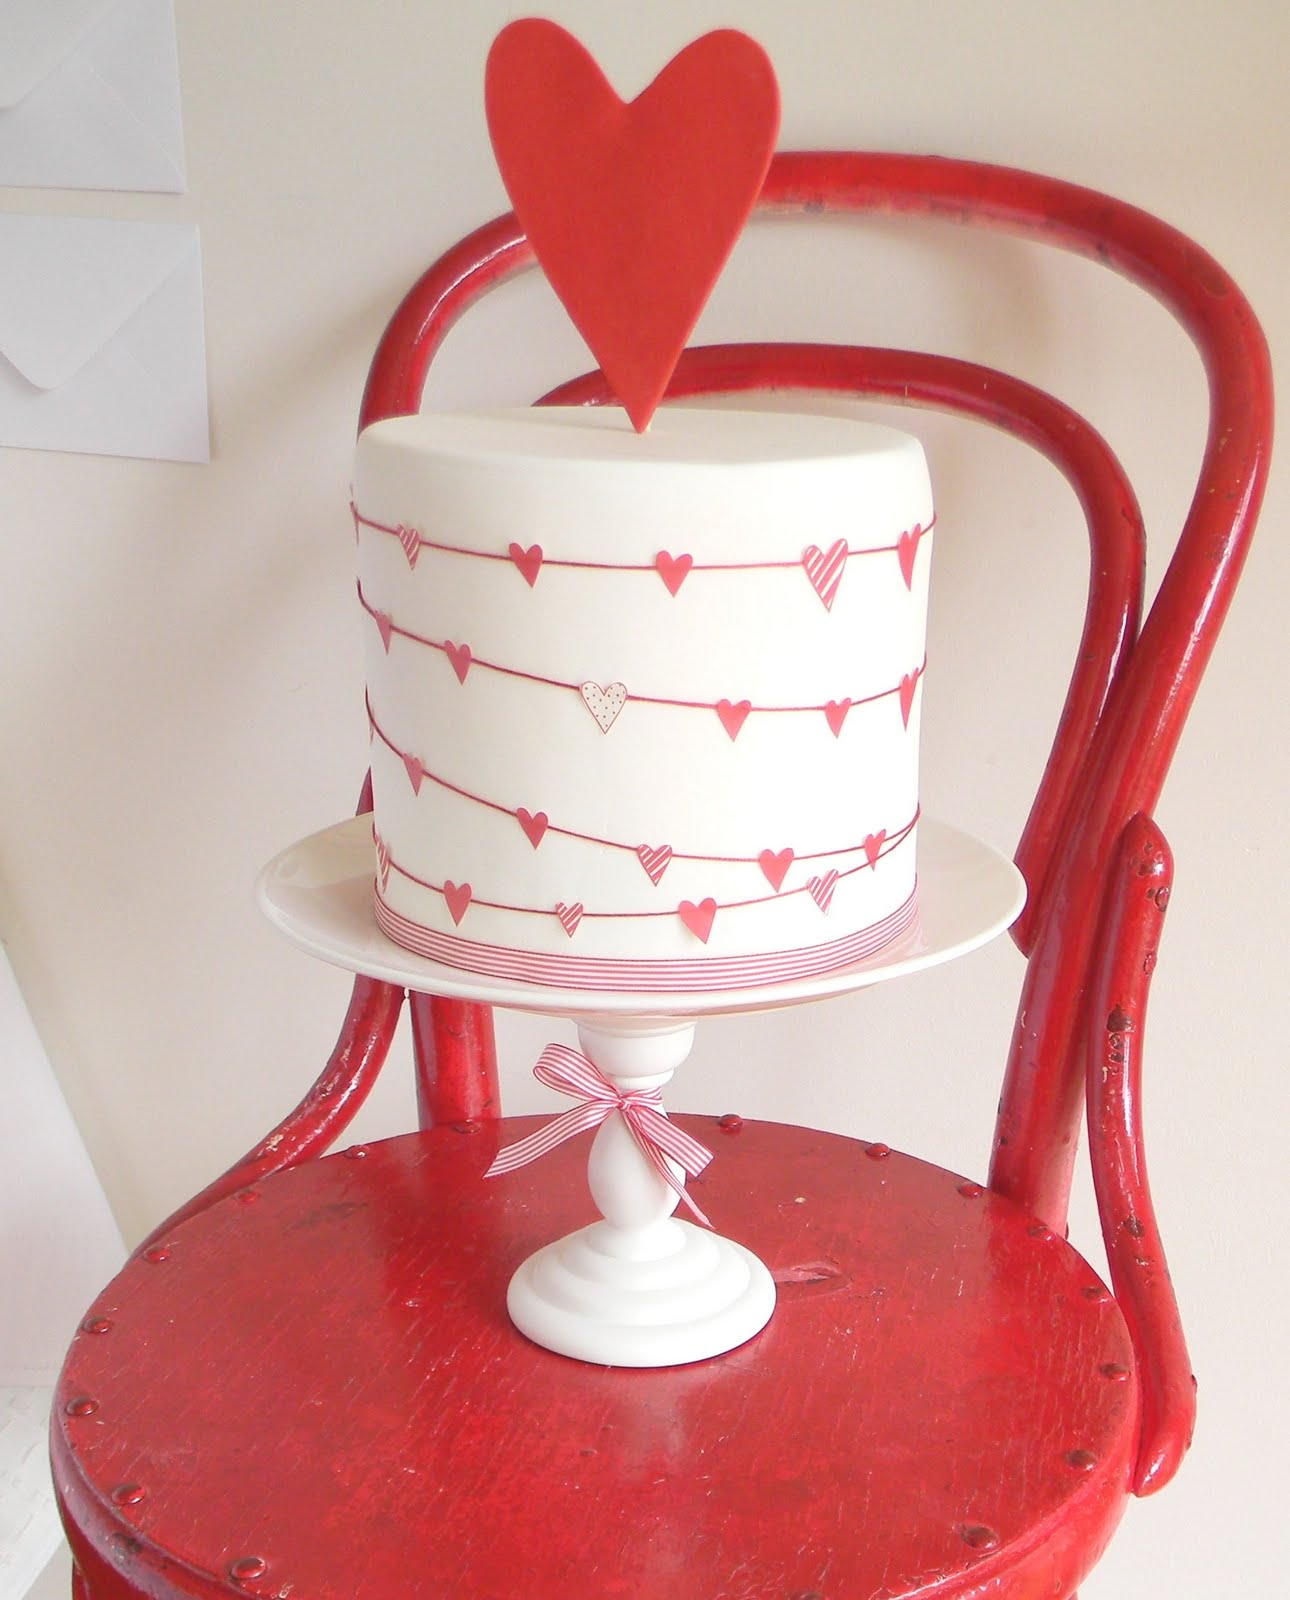 Top 8 Favorite Valentine's Day Cake Projects